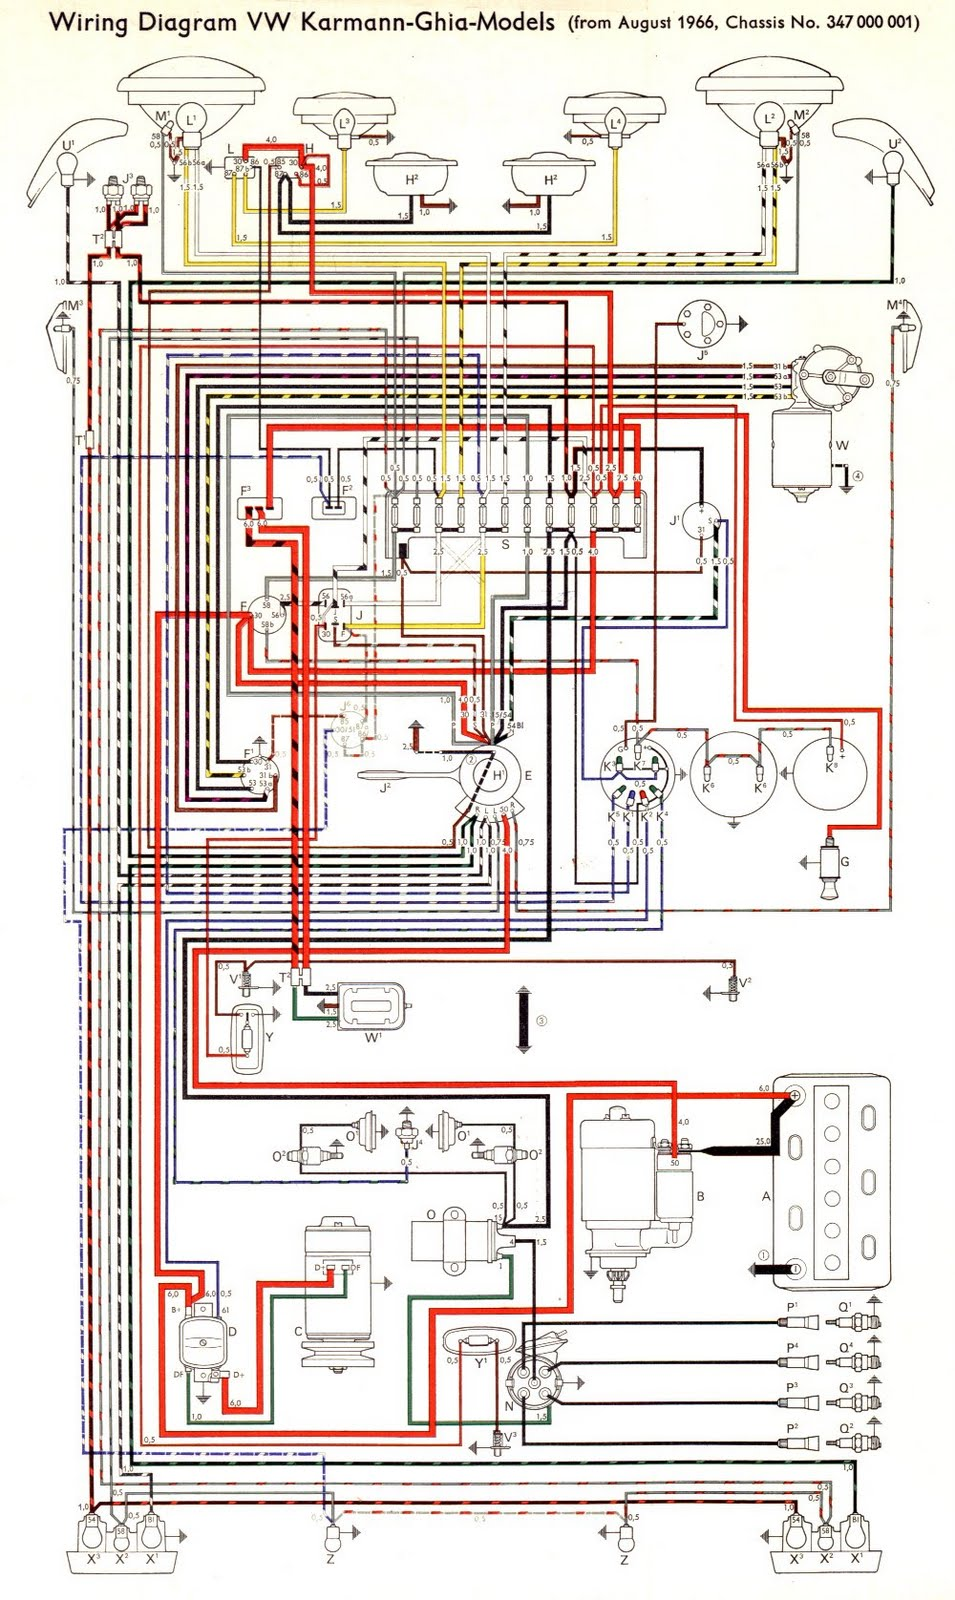 1974 VW Thing Wiring Diagram http://autowiringdiagram.blogspot.com/2011/04/1966-vw-karmann-ghia-models-wiring.html